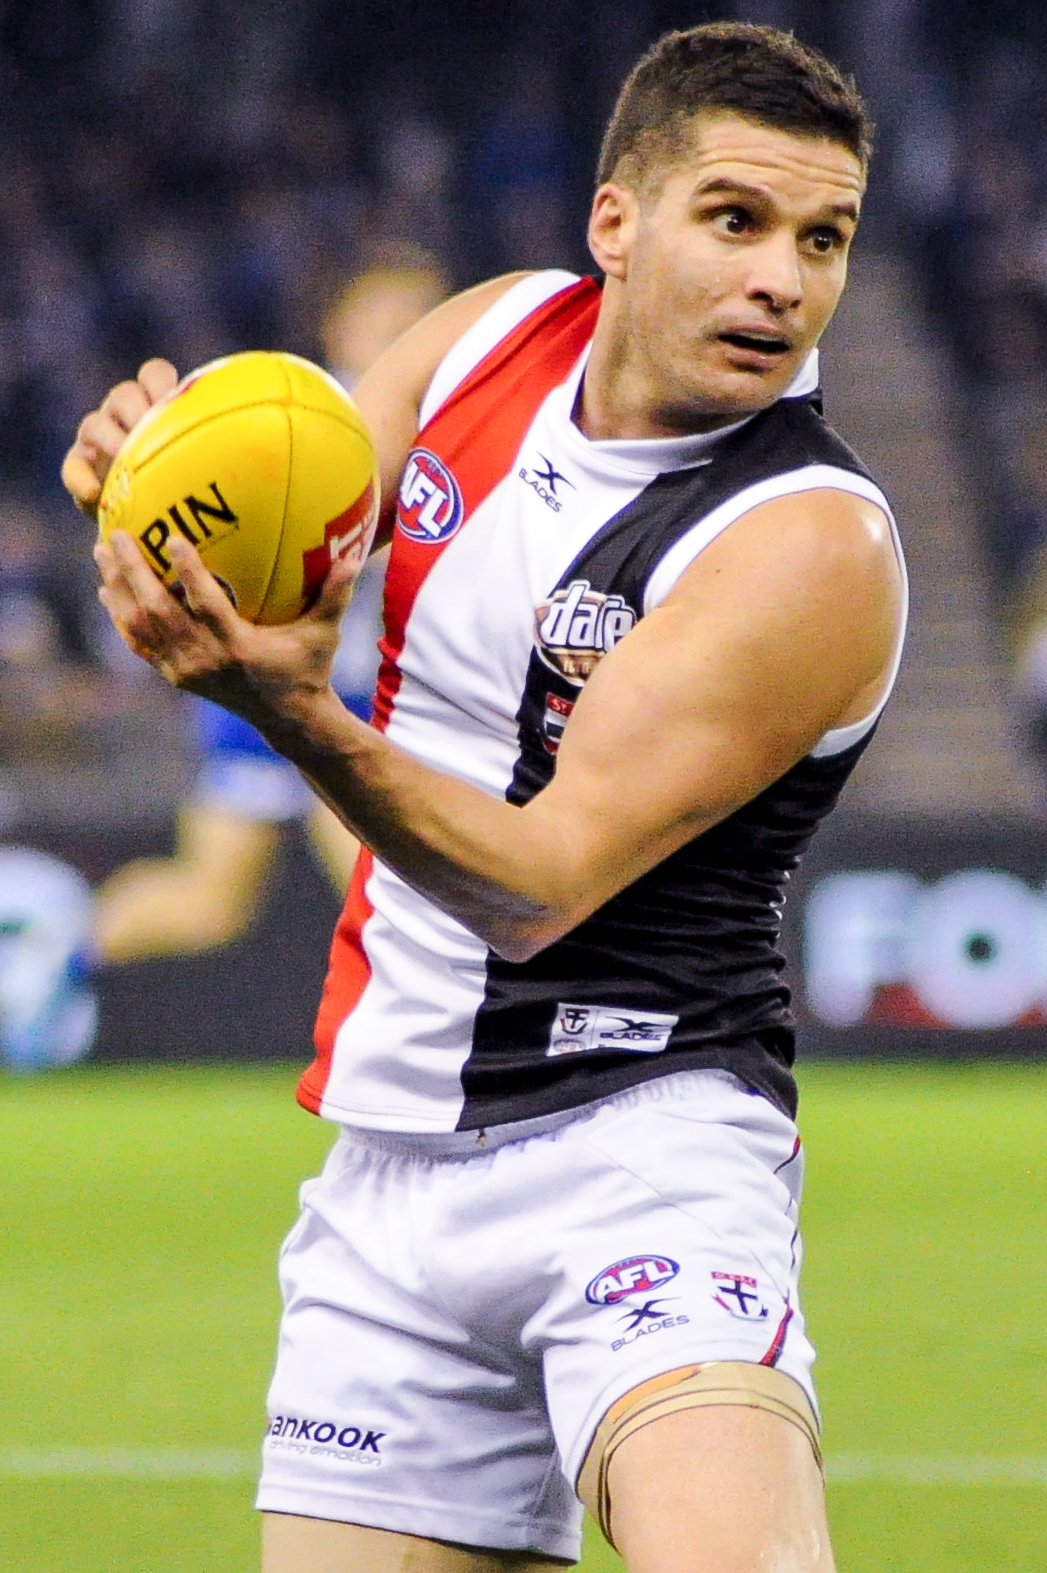 Top Free Games >> Leigh Montagna - Wikipedia